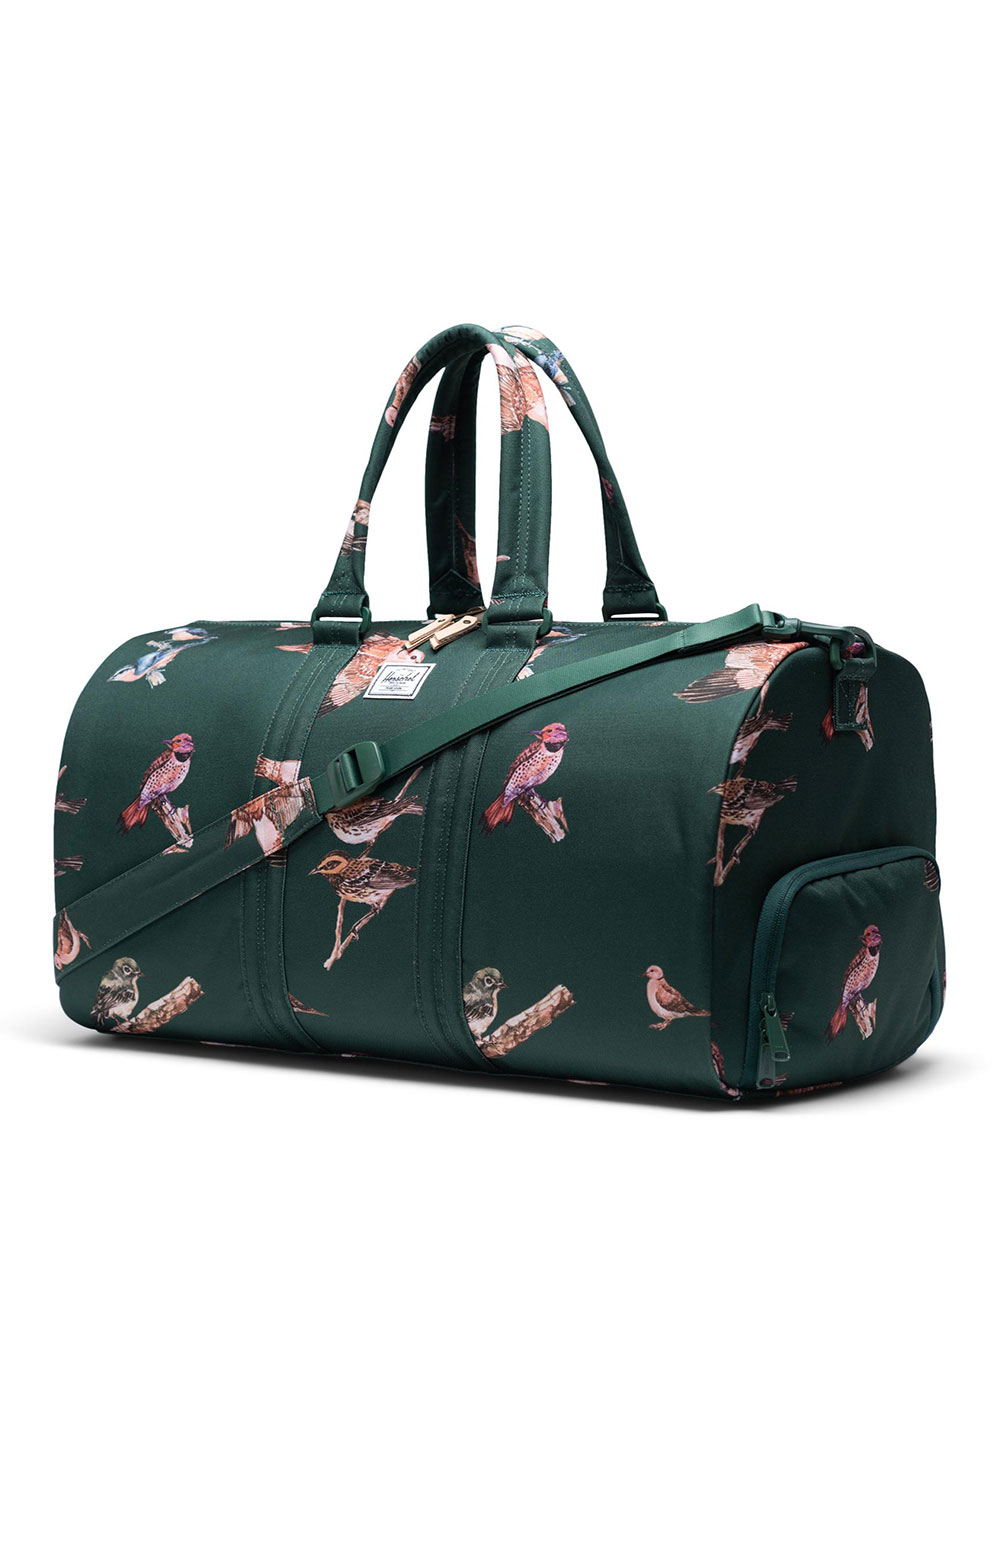 Novel Duffle Bag - Dark Green Birds 2